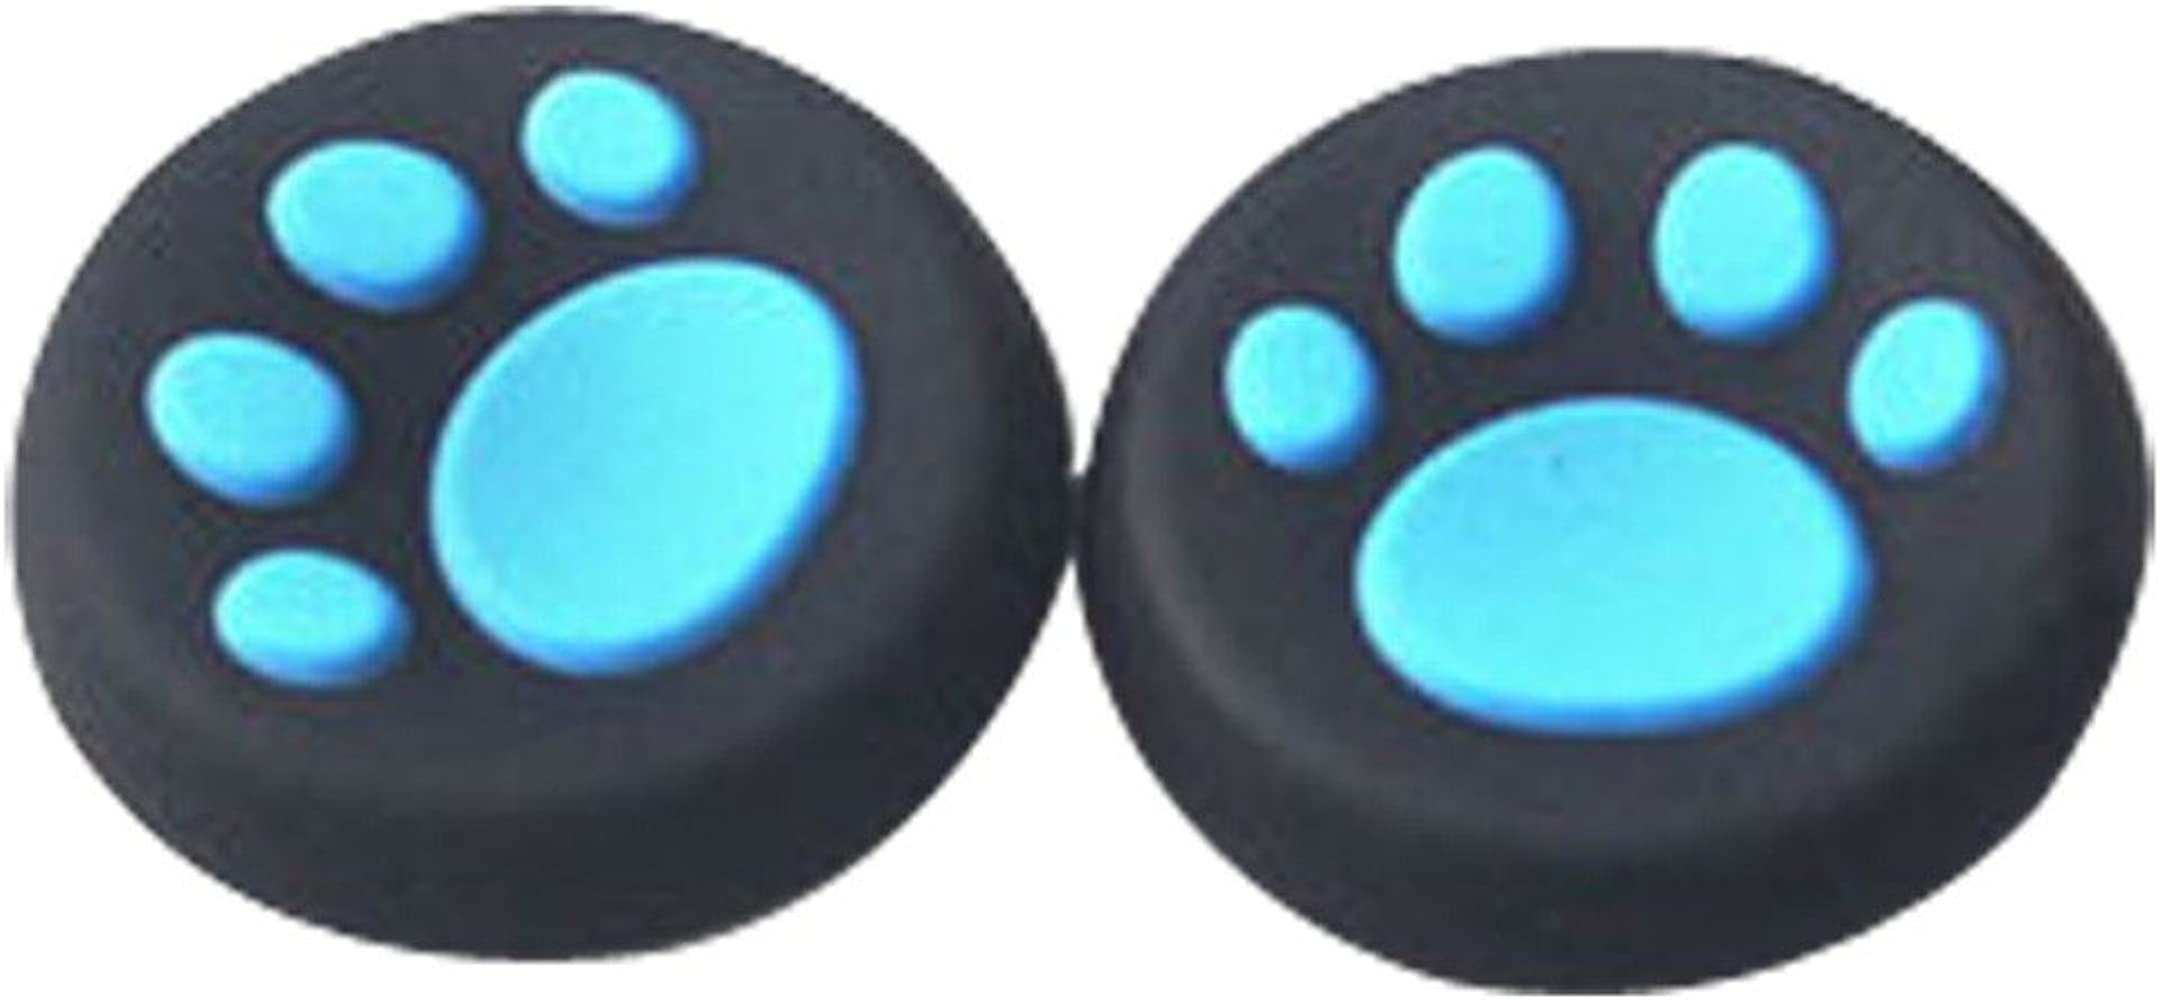 ❤️MChoice❤️1 Pairs Cat's Paw Silicone Gel Thumb Grips Caps for Nintendo Switch Controller